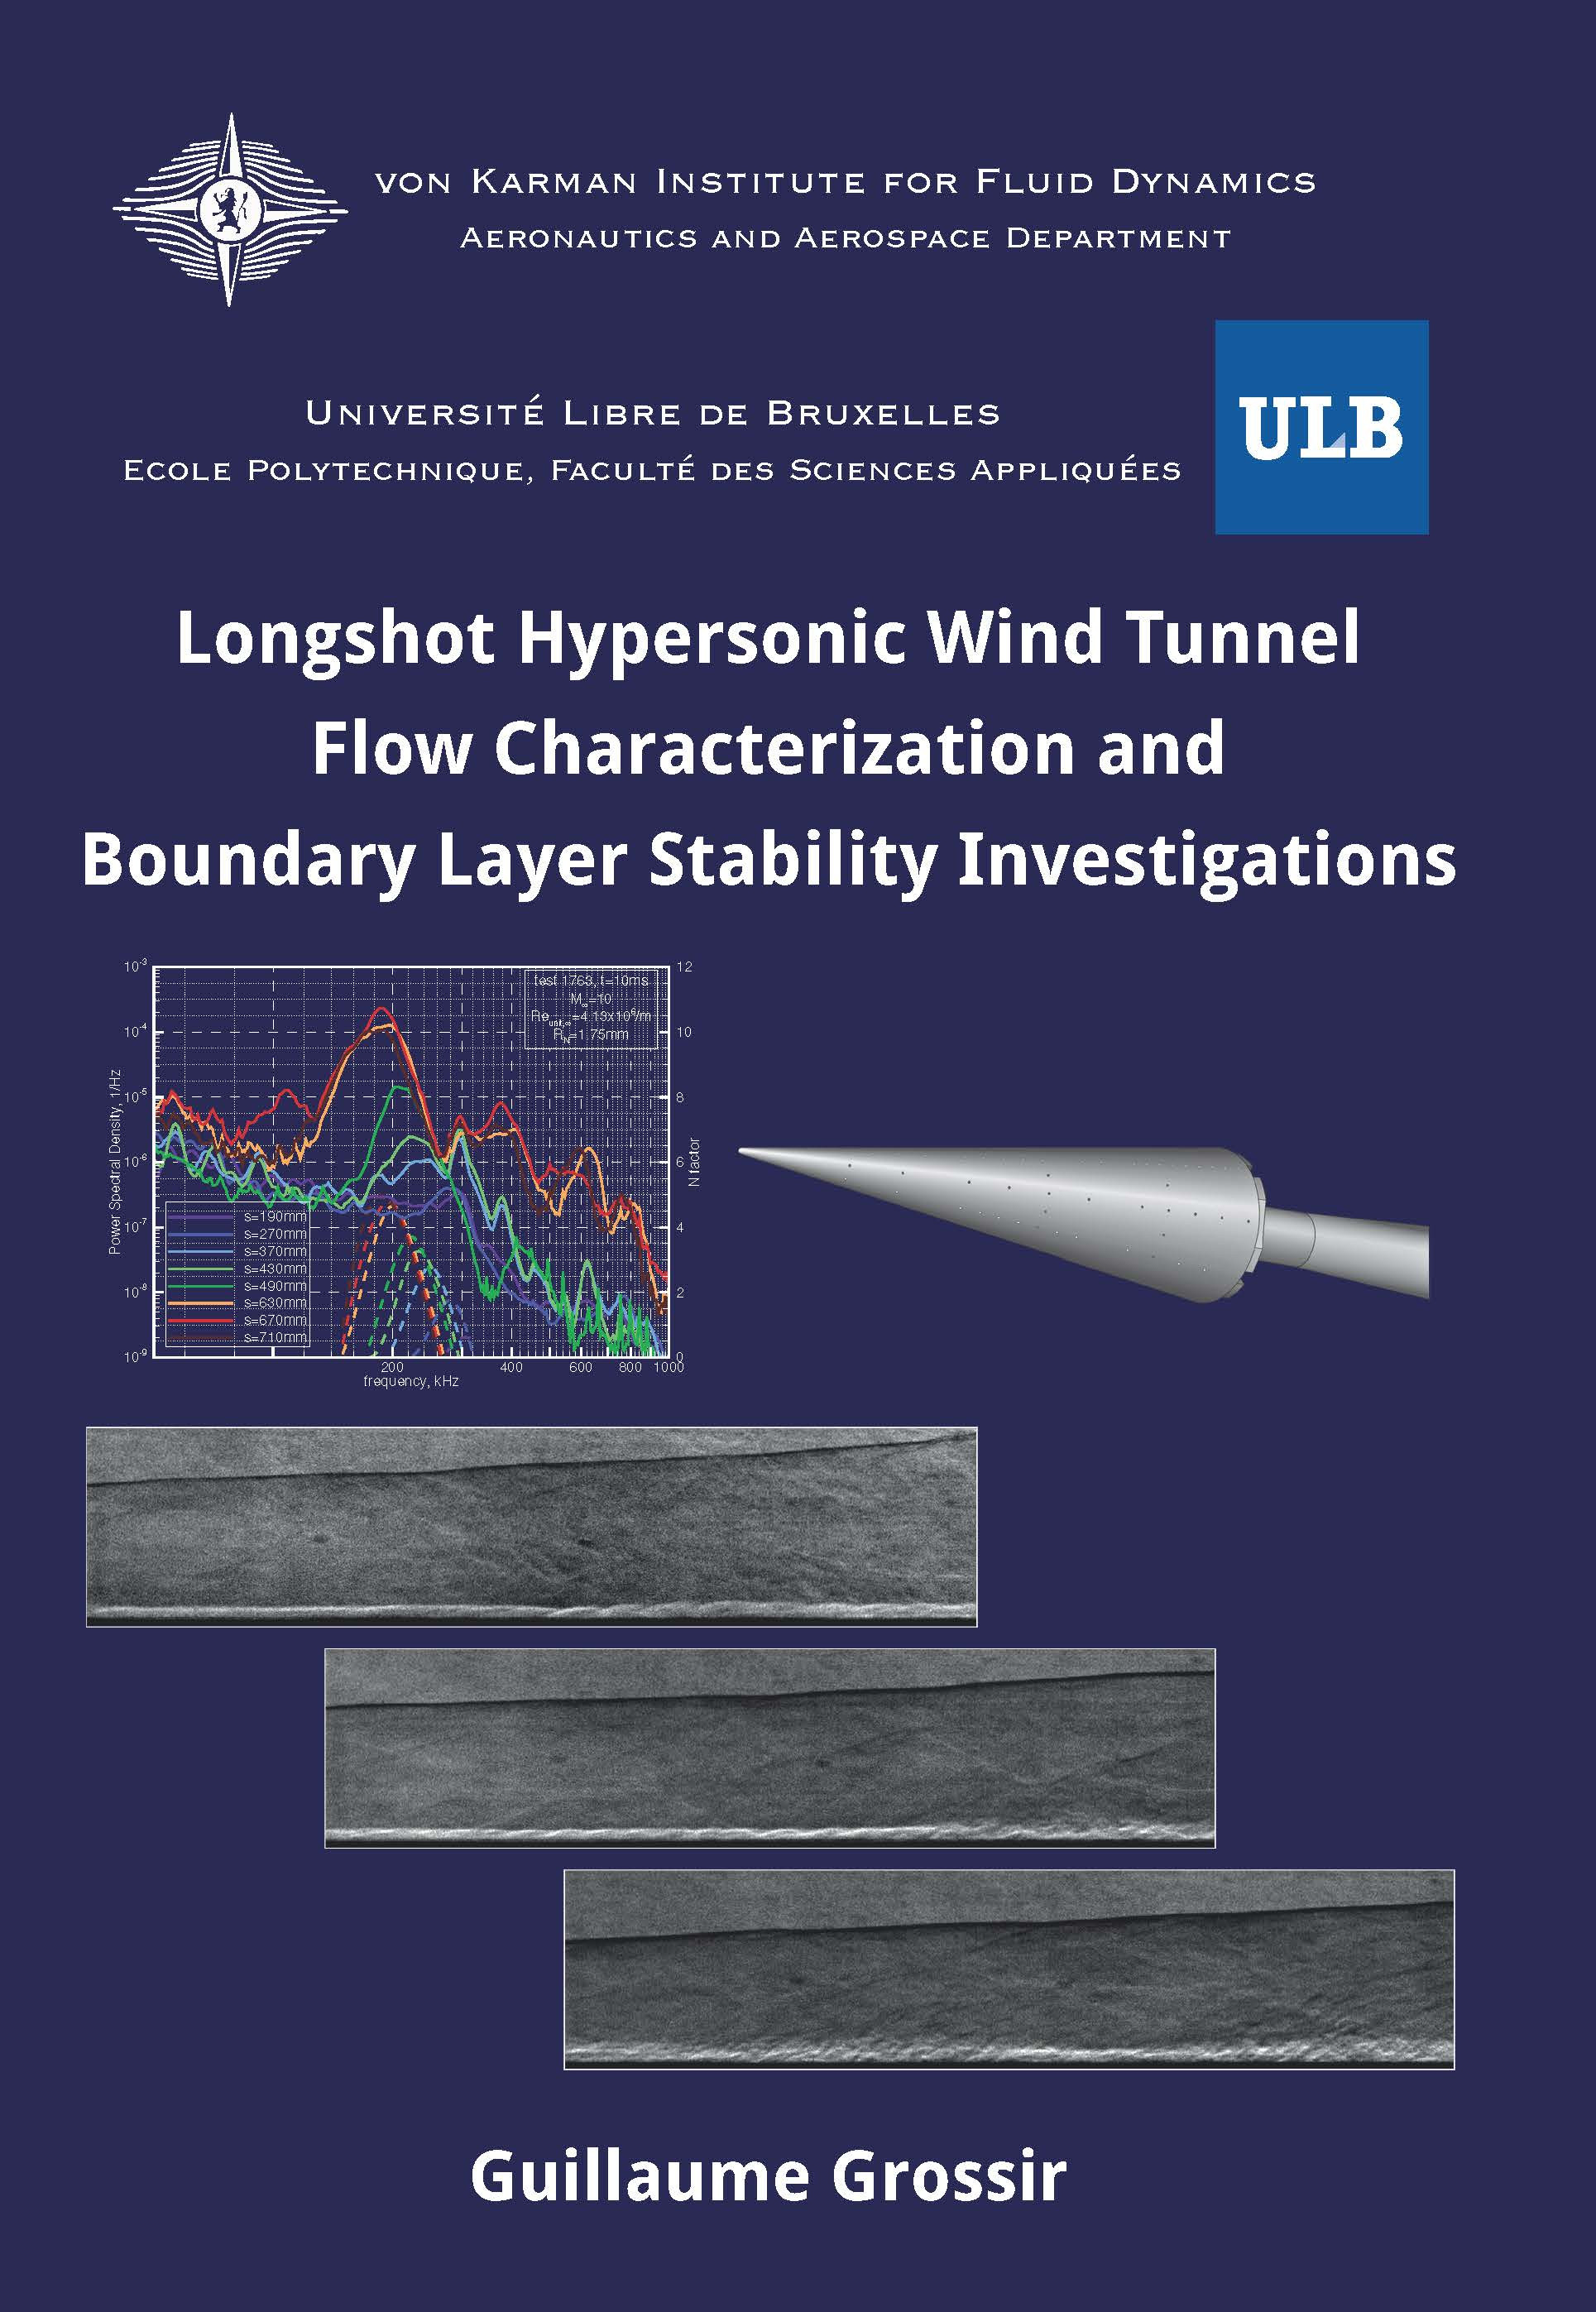 Longshot hypersonic wind tunnel flow characterization and boundary layer stability investigations  - Guillaume Grossir - Ph.D. Thesis - Free download